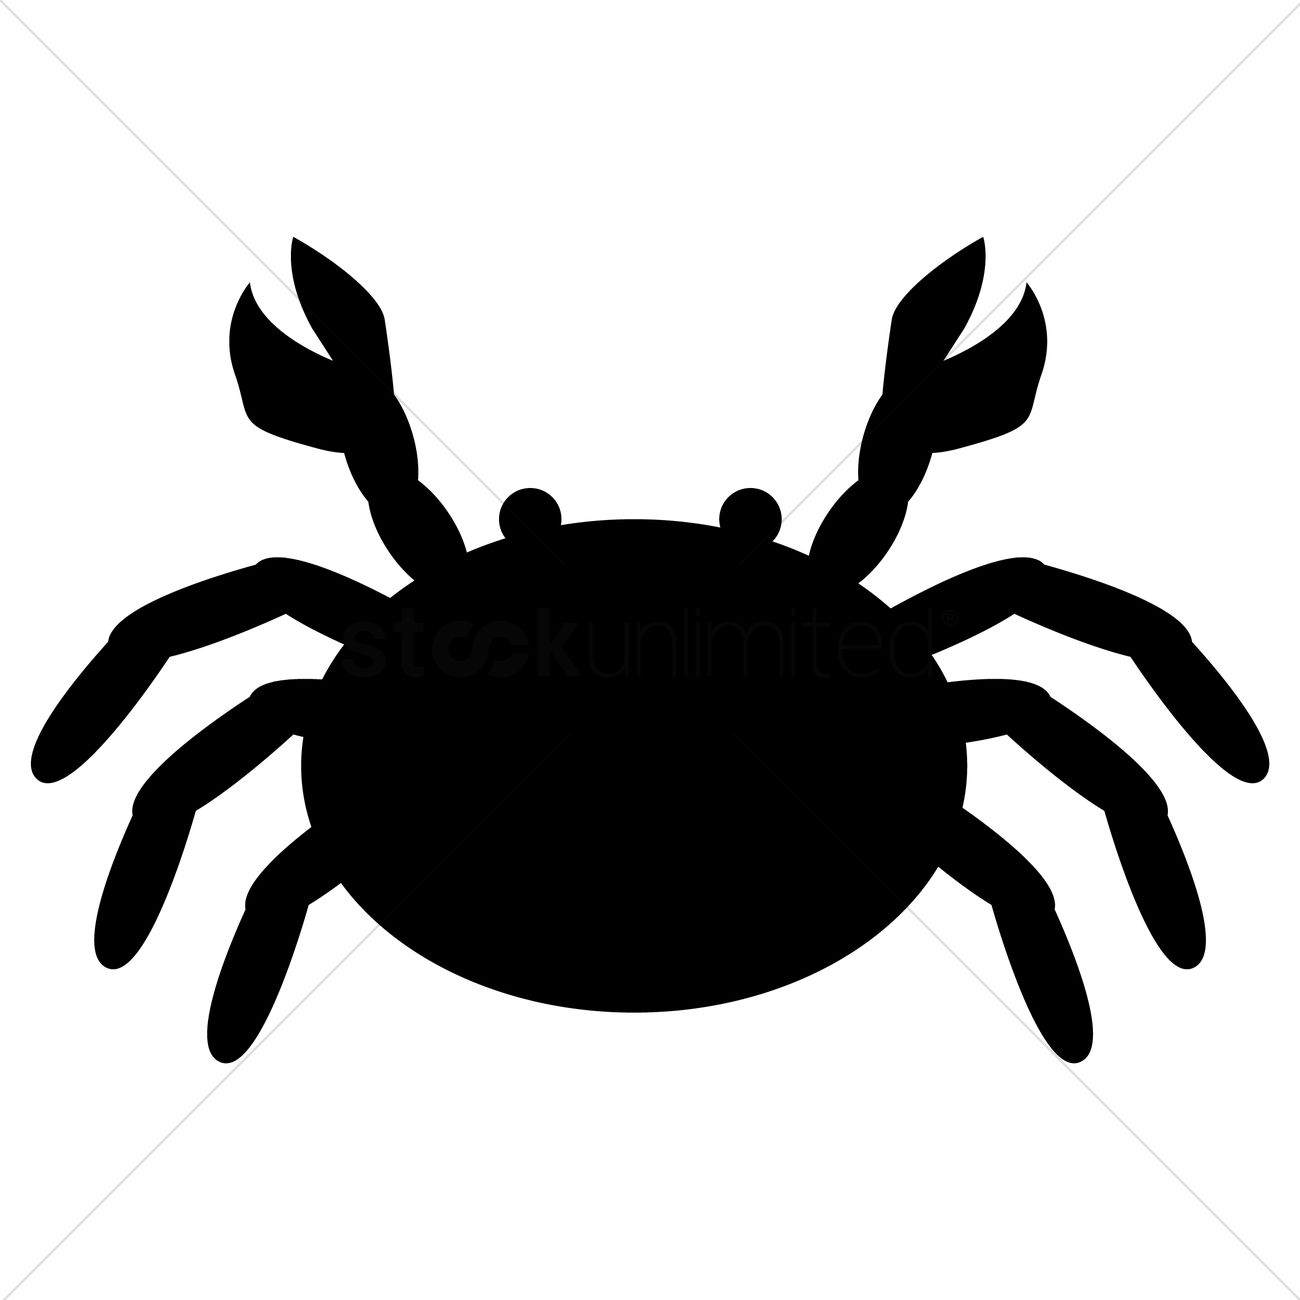 1300x1300 Silhouette Of Crab Vector Image